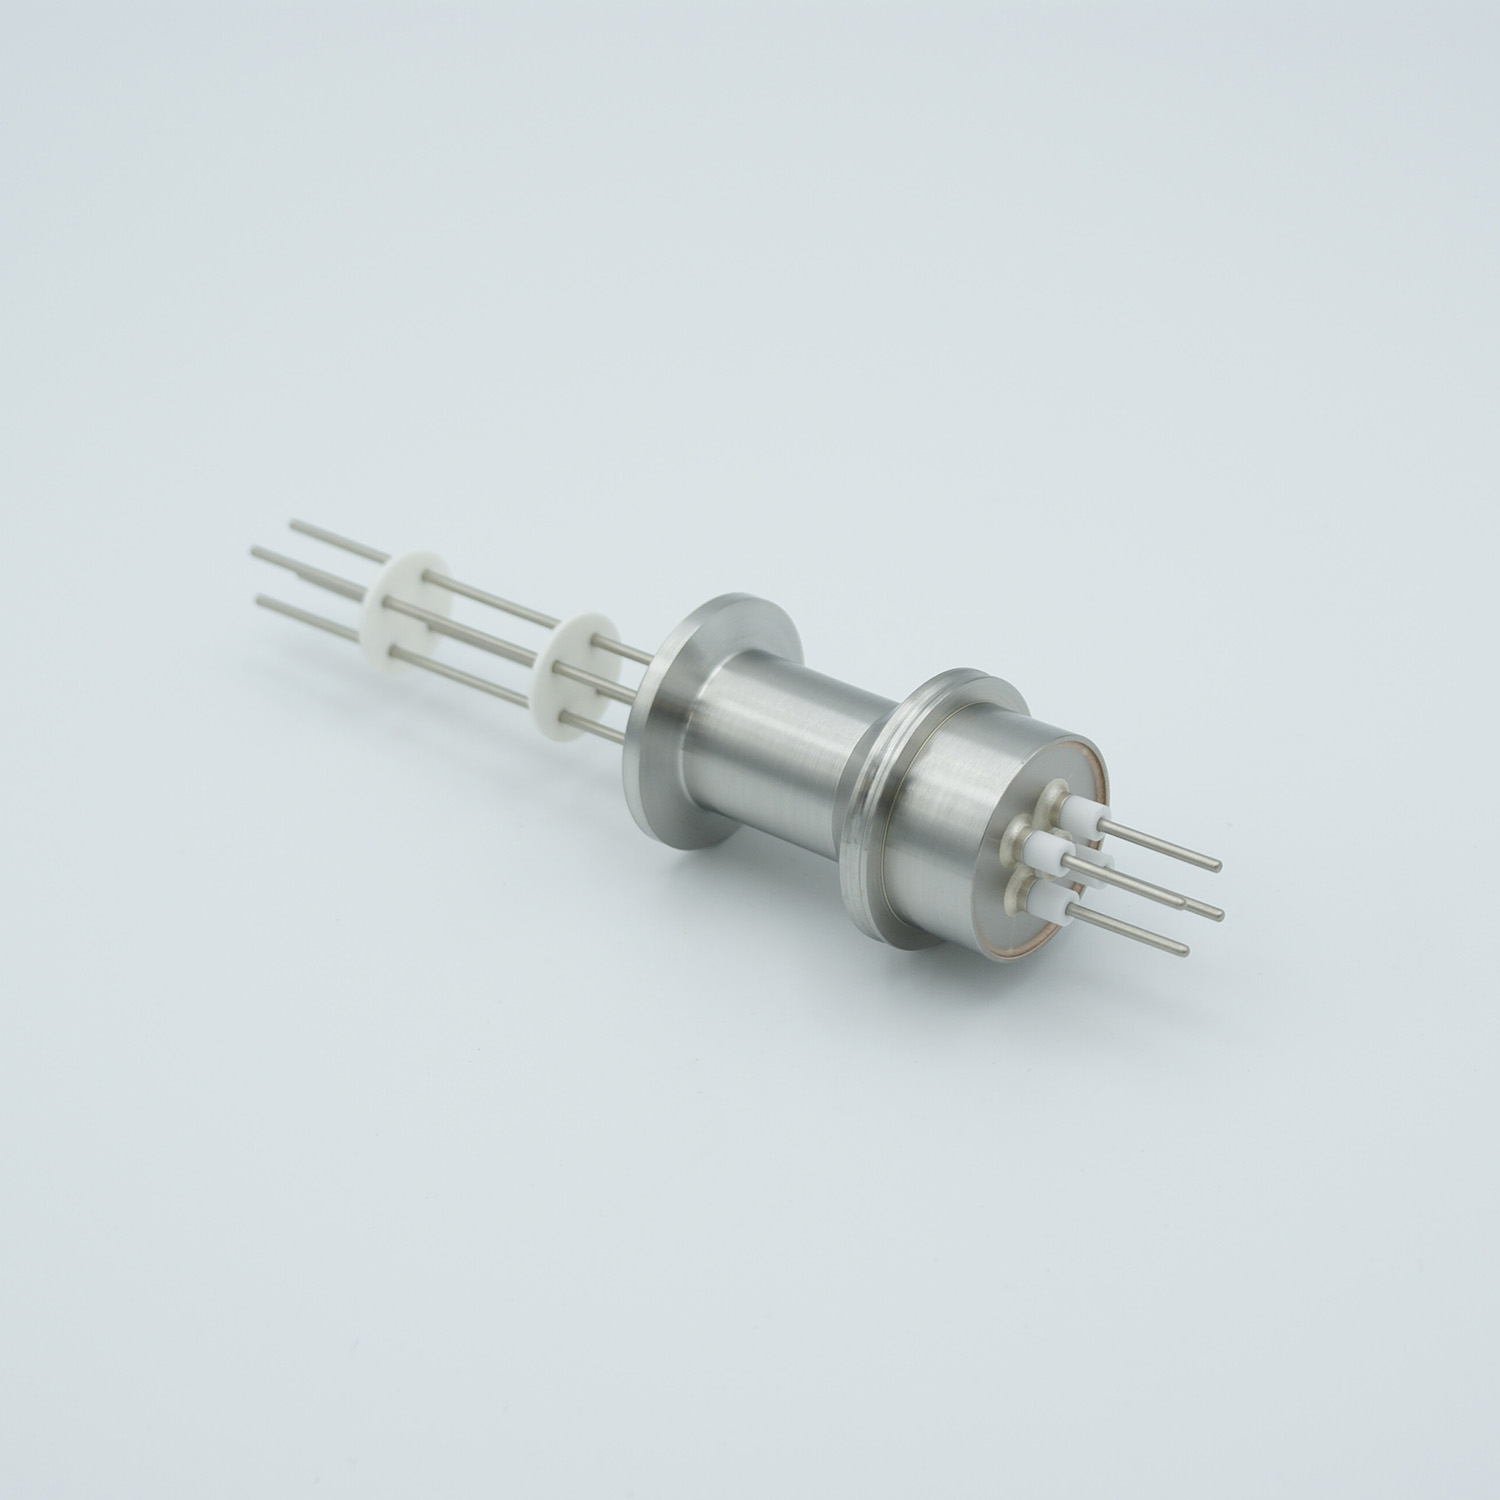 2 pair Thermocouple type-J feedthrough for push on connectors, DN16KF flange